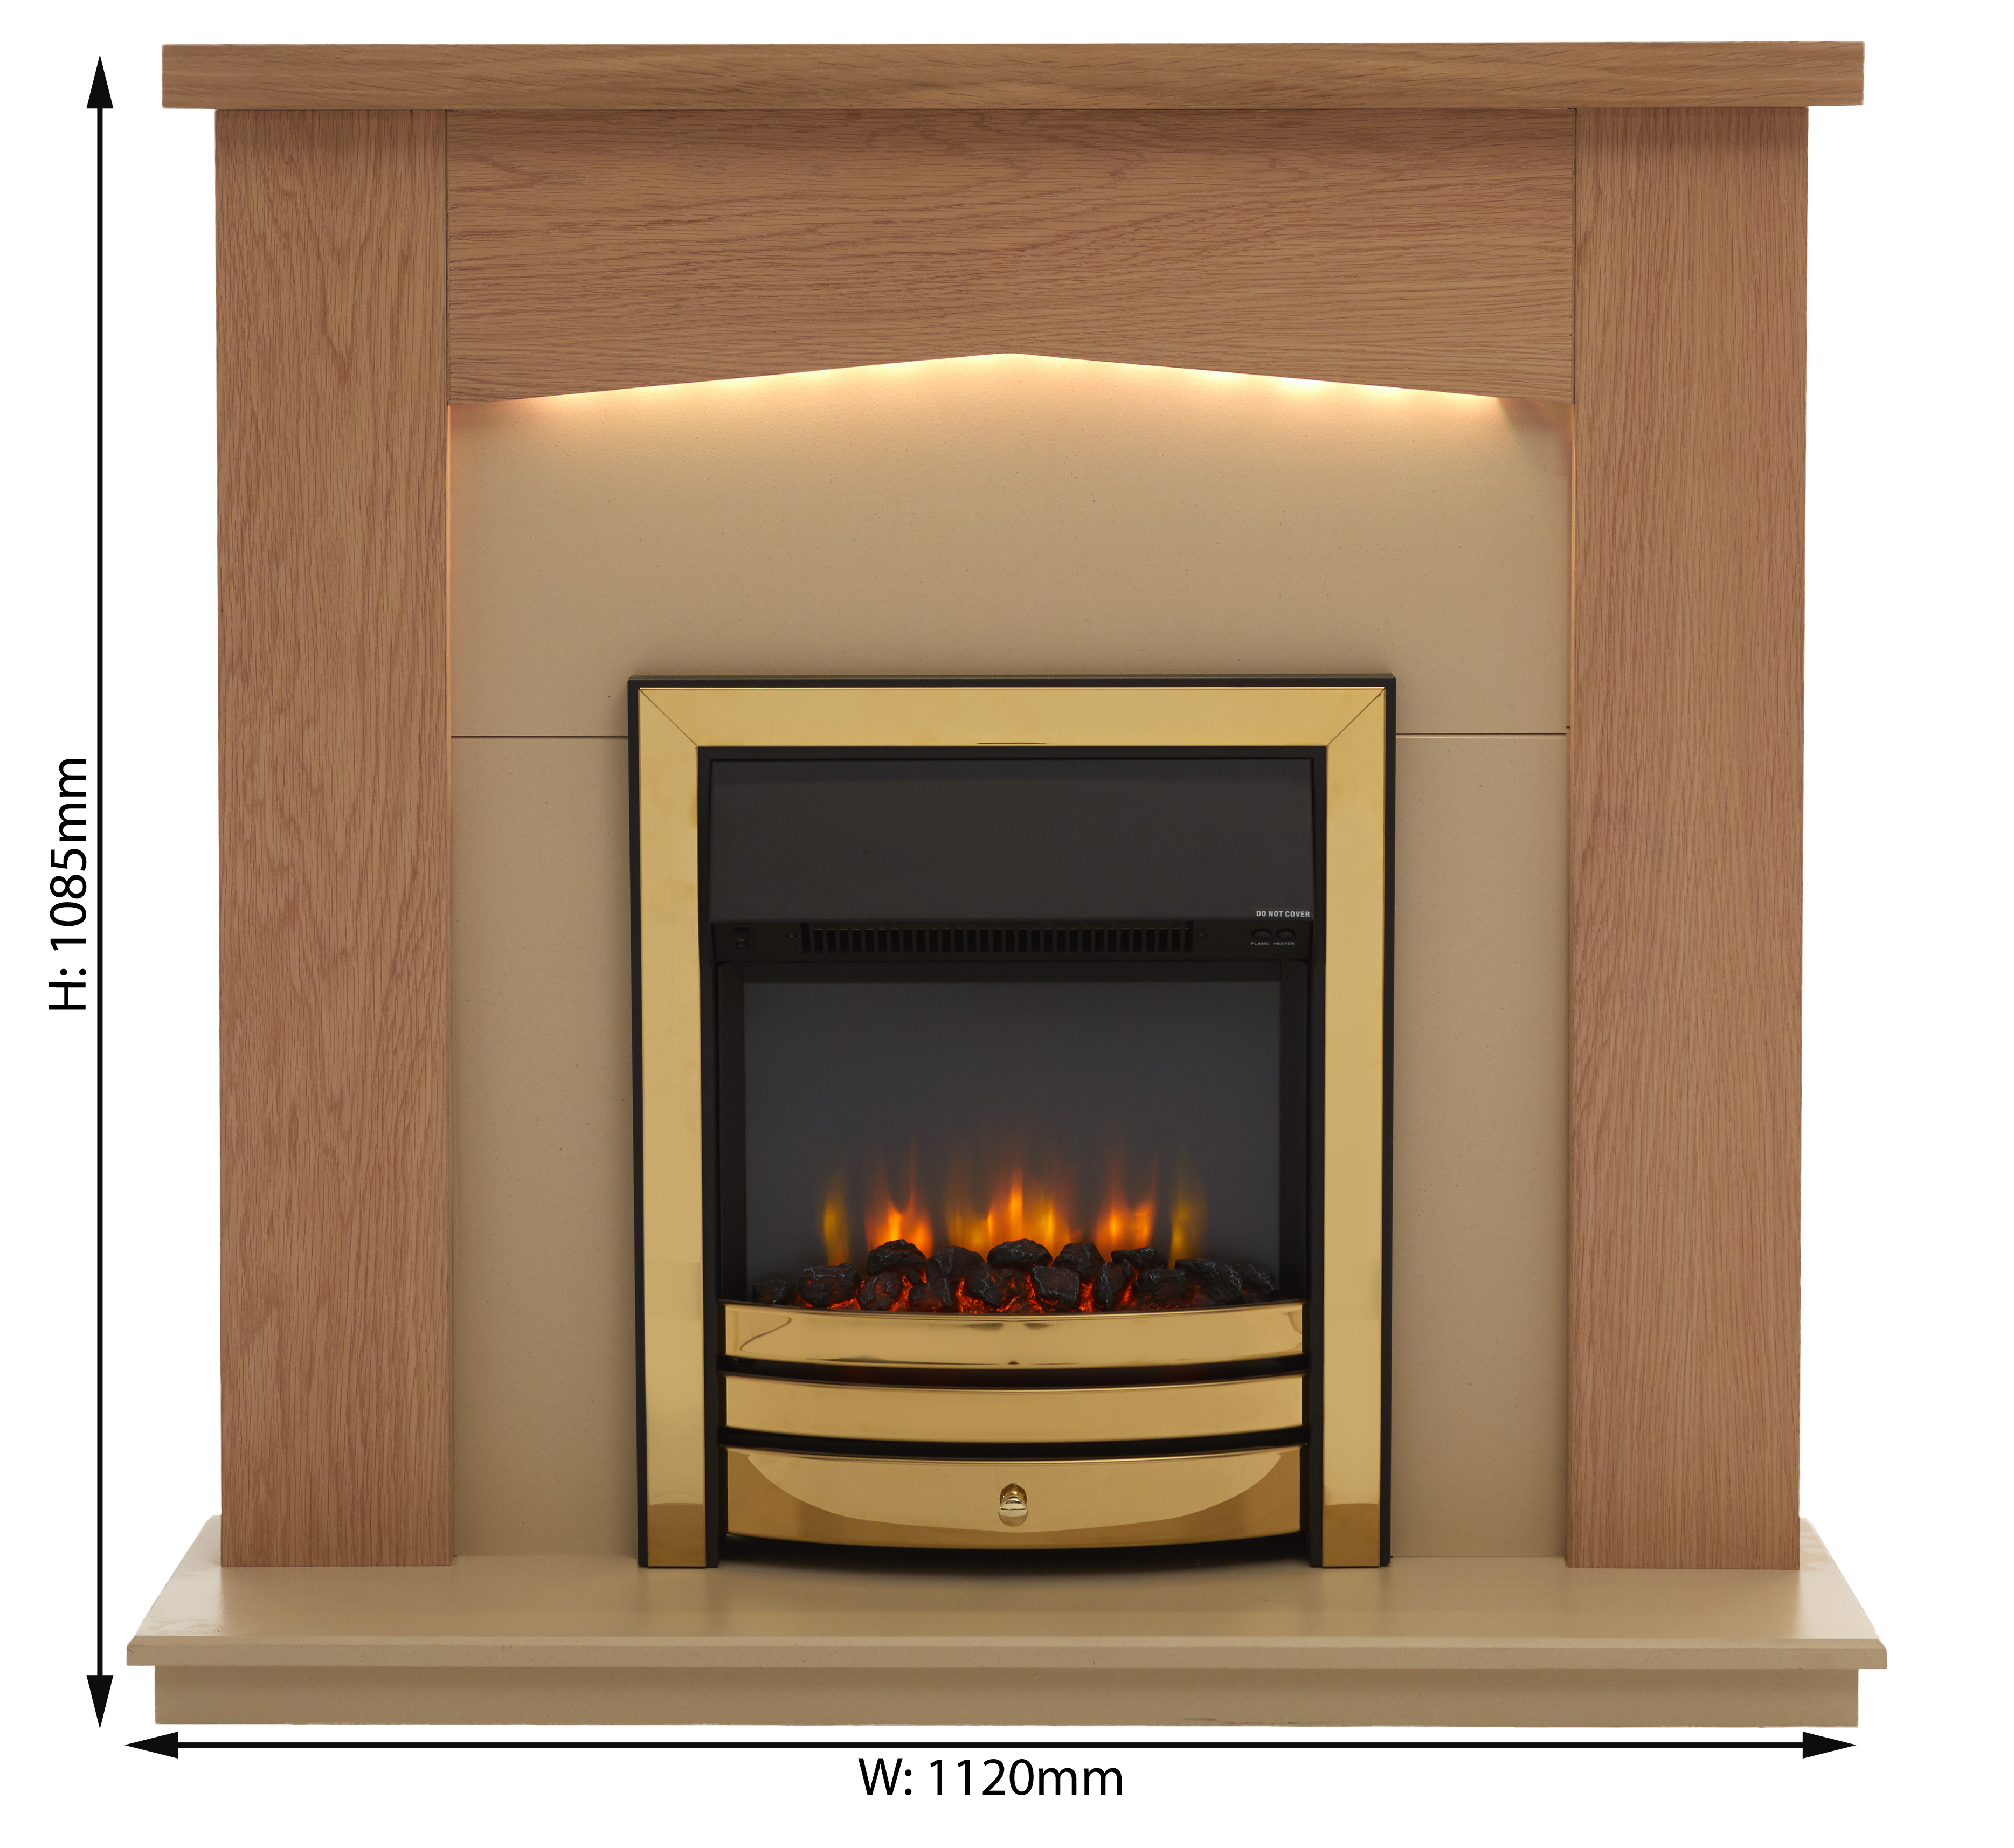 E122SVoltage 220/240Vac 50hz 1 and 2 kW.Colour - MDF Fireplace- wood effect, Fire- Black/Brass/Chrome.Dimensions: H 1085mm x W 1120mm x D 320mm.Remote control functions - Off/On, flame effect, mood lighting, heater, thermostat, timer.One-year manufacturer's guarantee.